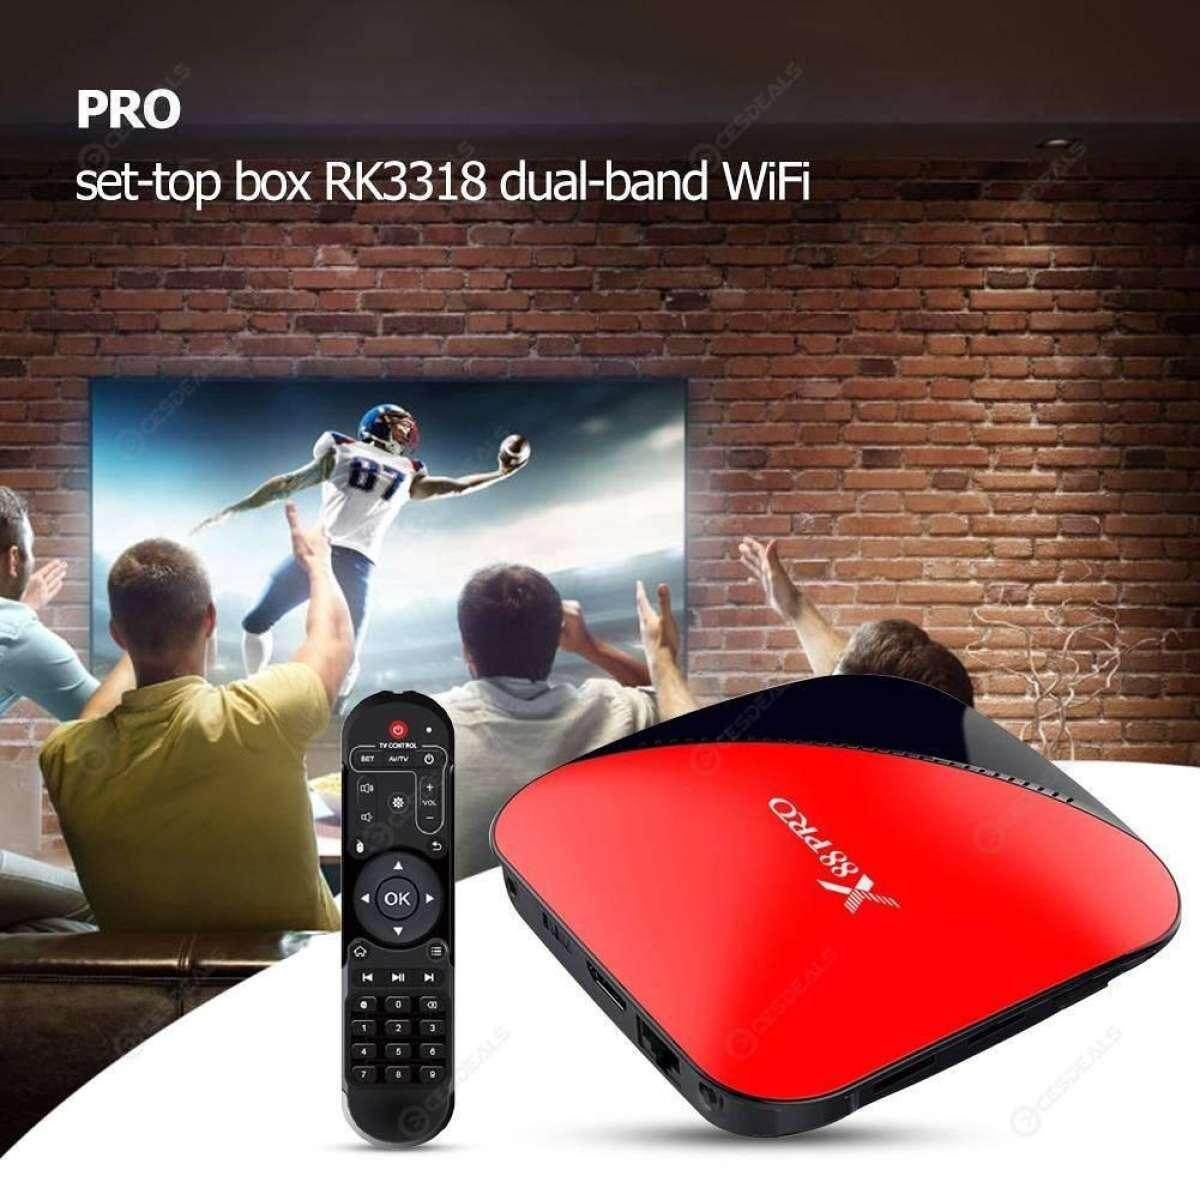 นครนายก X88 Pro 64G Android 9.0 TV Box Rockchip RK3318 4 Core 2.4G&5G Wifi 4K HDR Set Top Box USB 3.0 Support 3D Movie